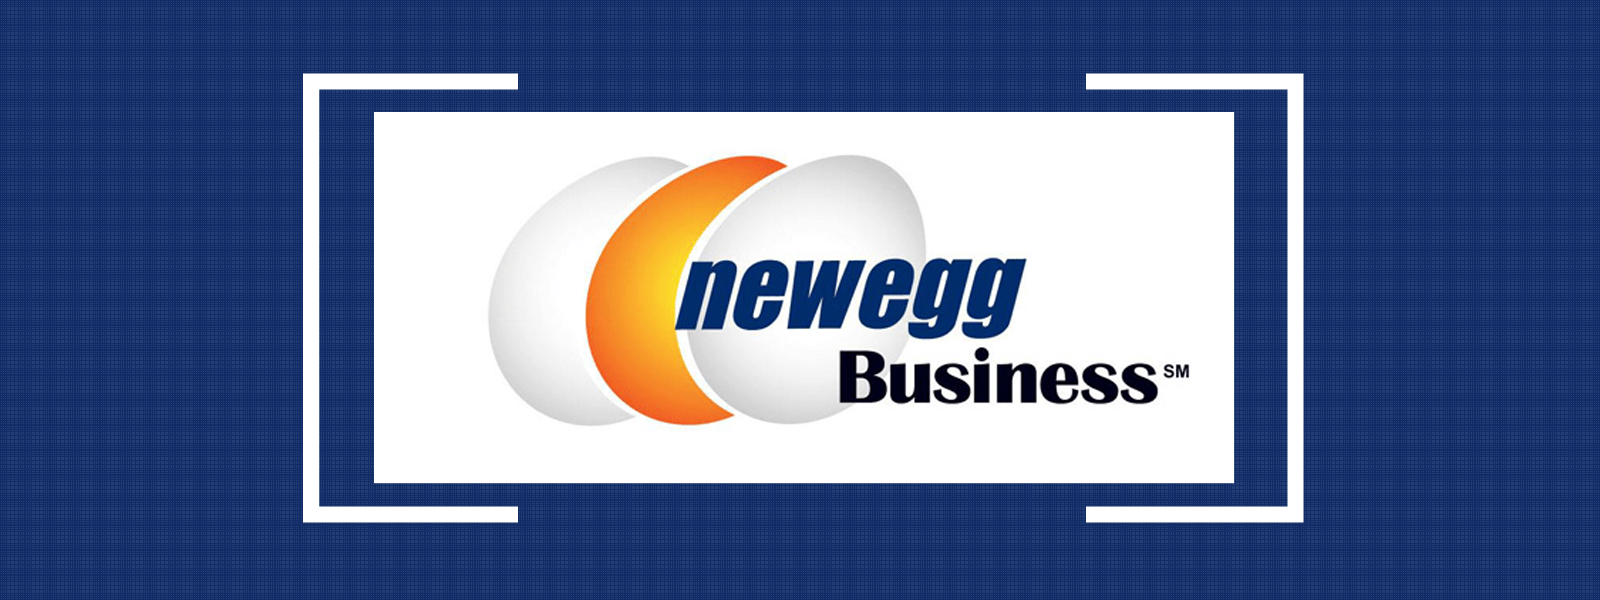 neweggbusiness integration